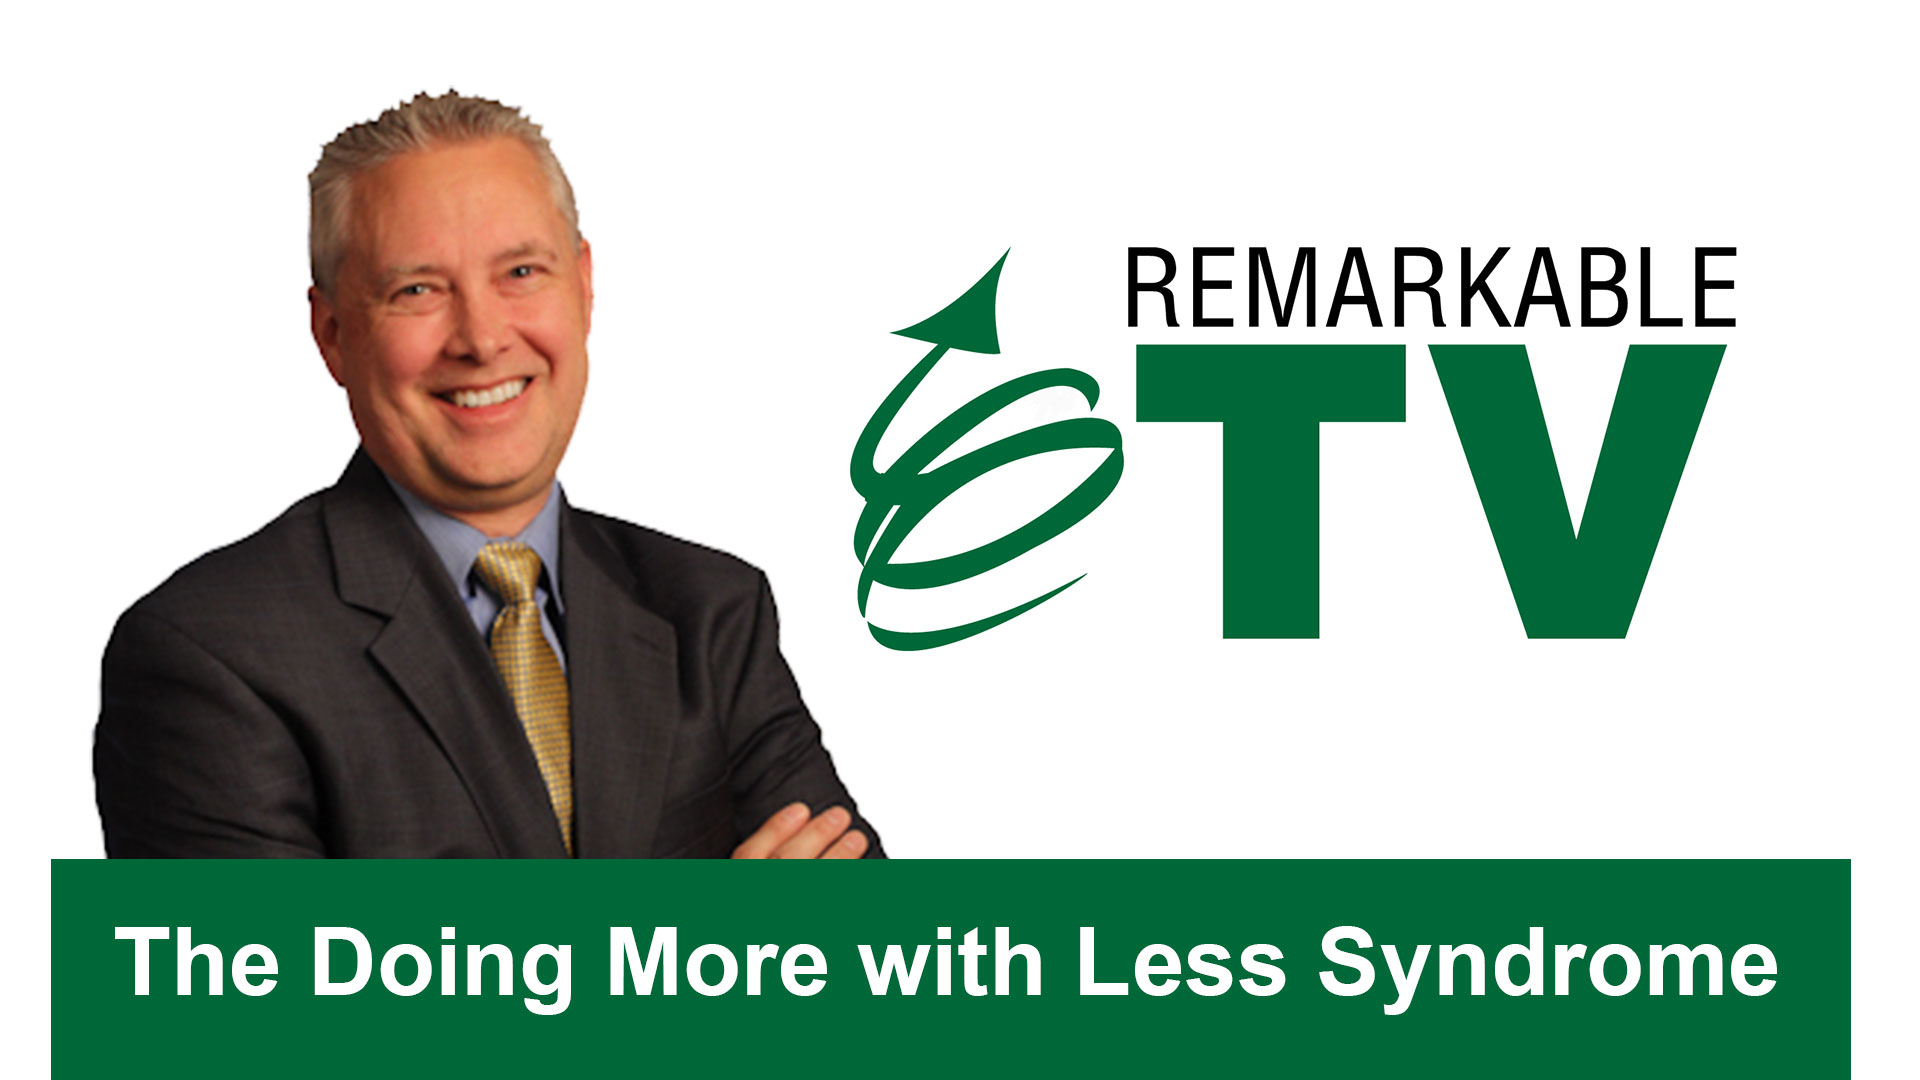 Remarkable TV: Doing More with Less